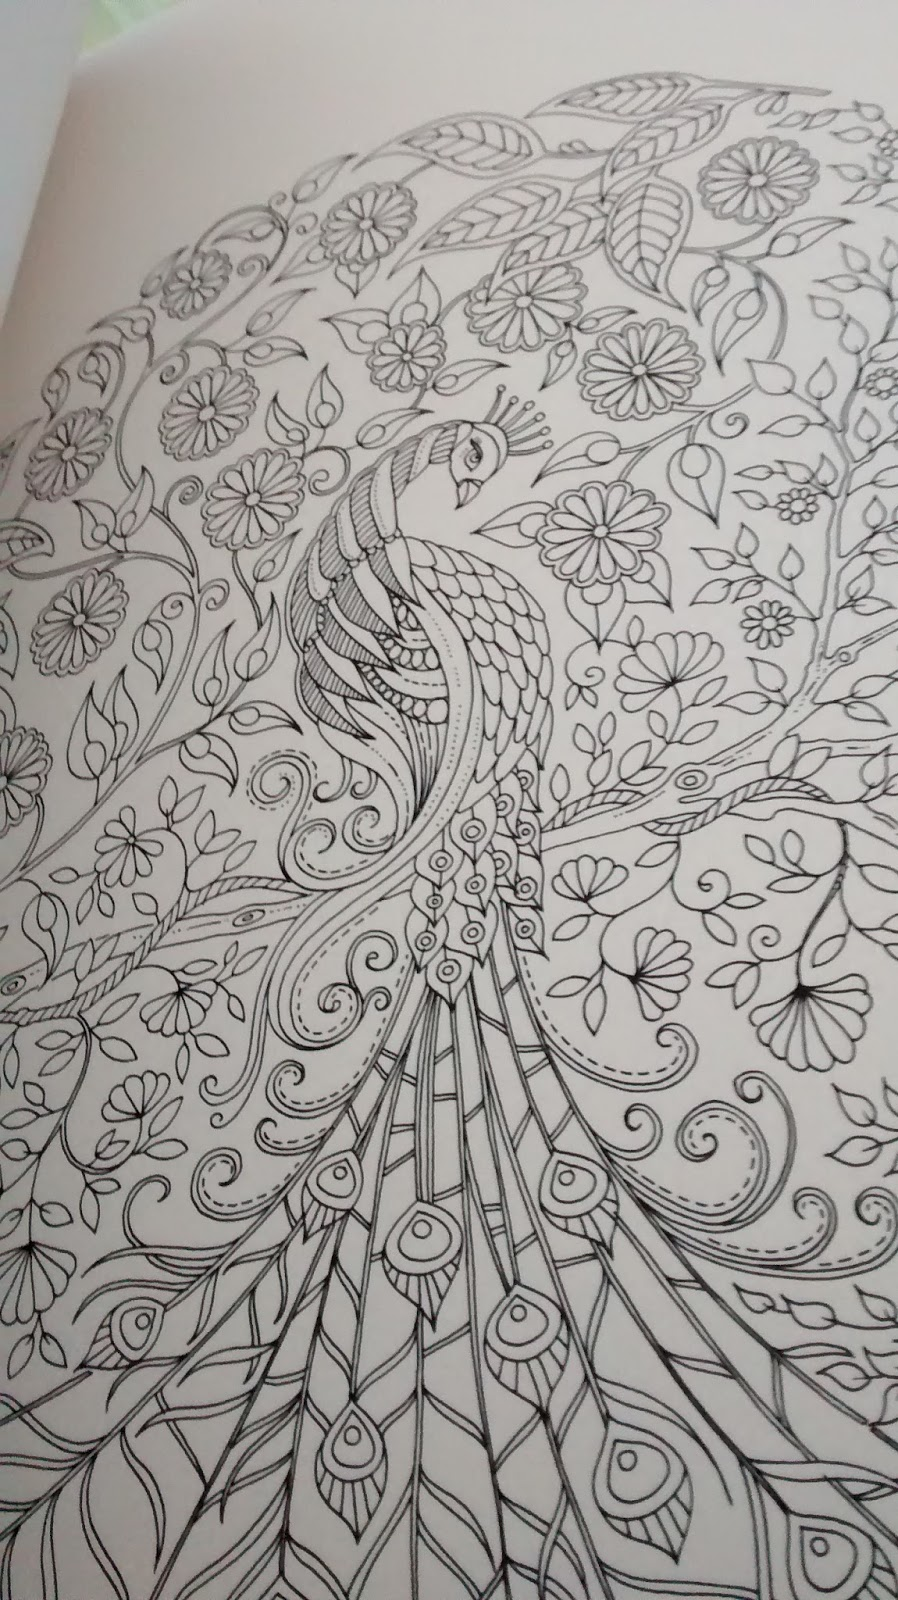 how long must it have taken to produce some of these theyre honestly amazing heres one of my favourites a peacock i have started colouring in - My Secret Garden Coloring Book